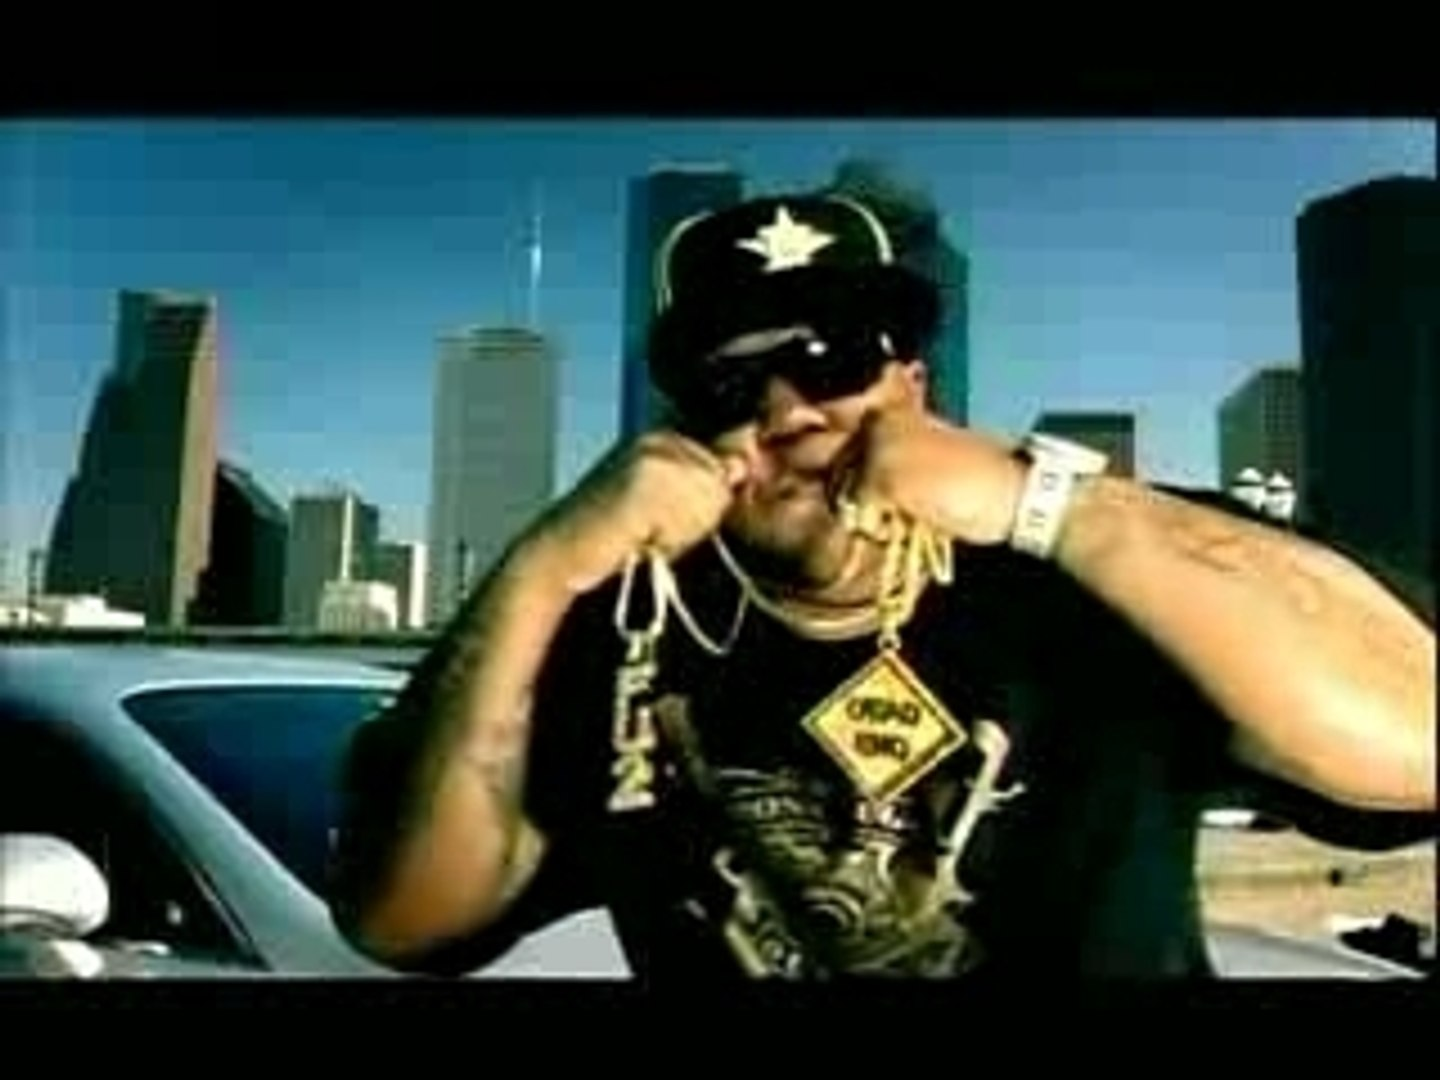 boss hogg outlawz - recognize a playa-(2007)